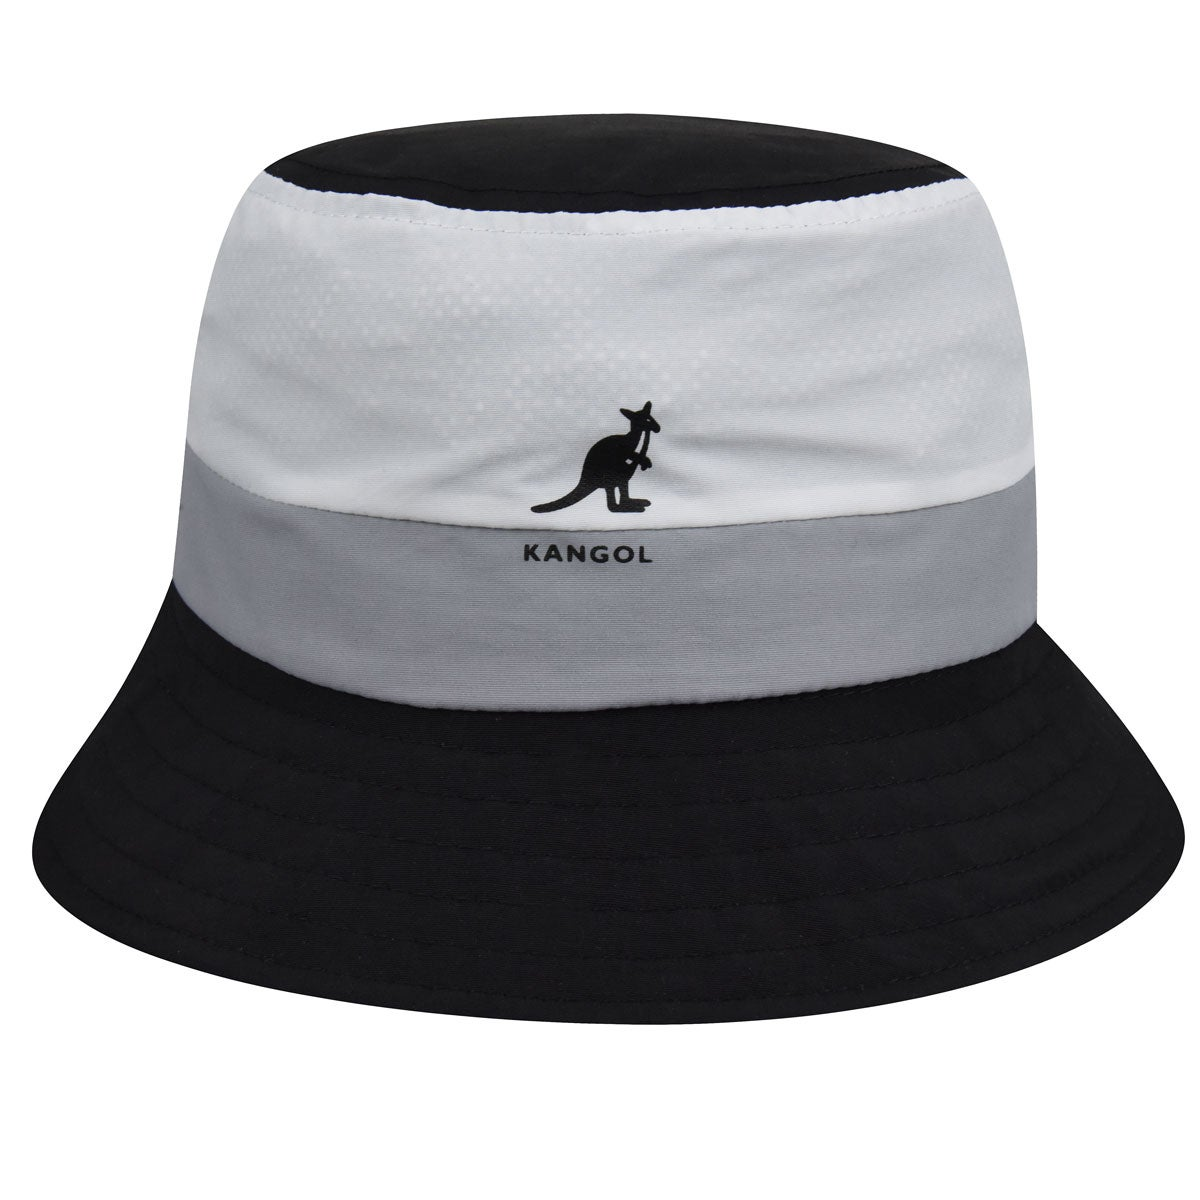 9d37d86fc6033 Kangol Bold Stripe Bucket Hat Black Large. About this product. Picture 1 of  6  Picture 2 of 6  Picture 3 of 6 ...